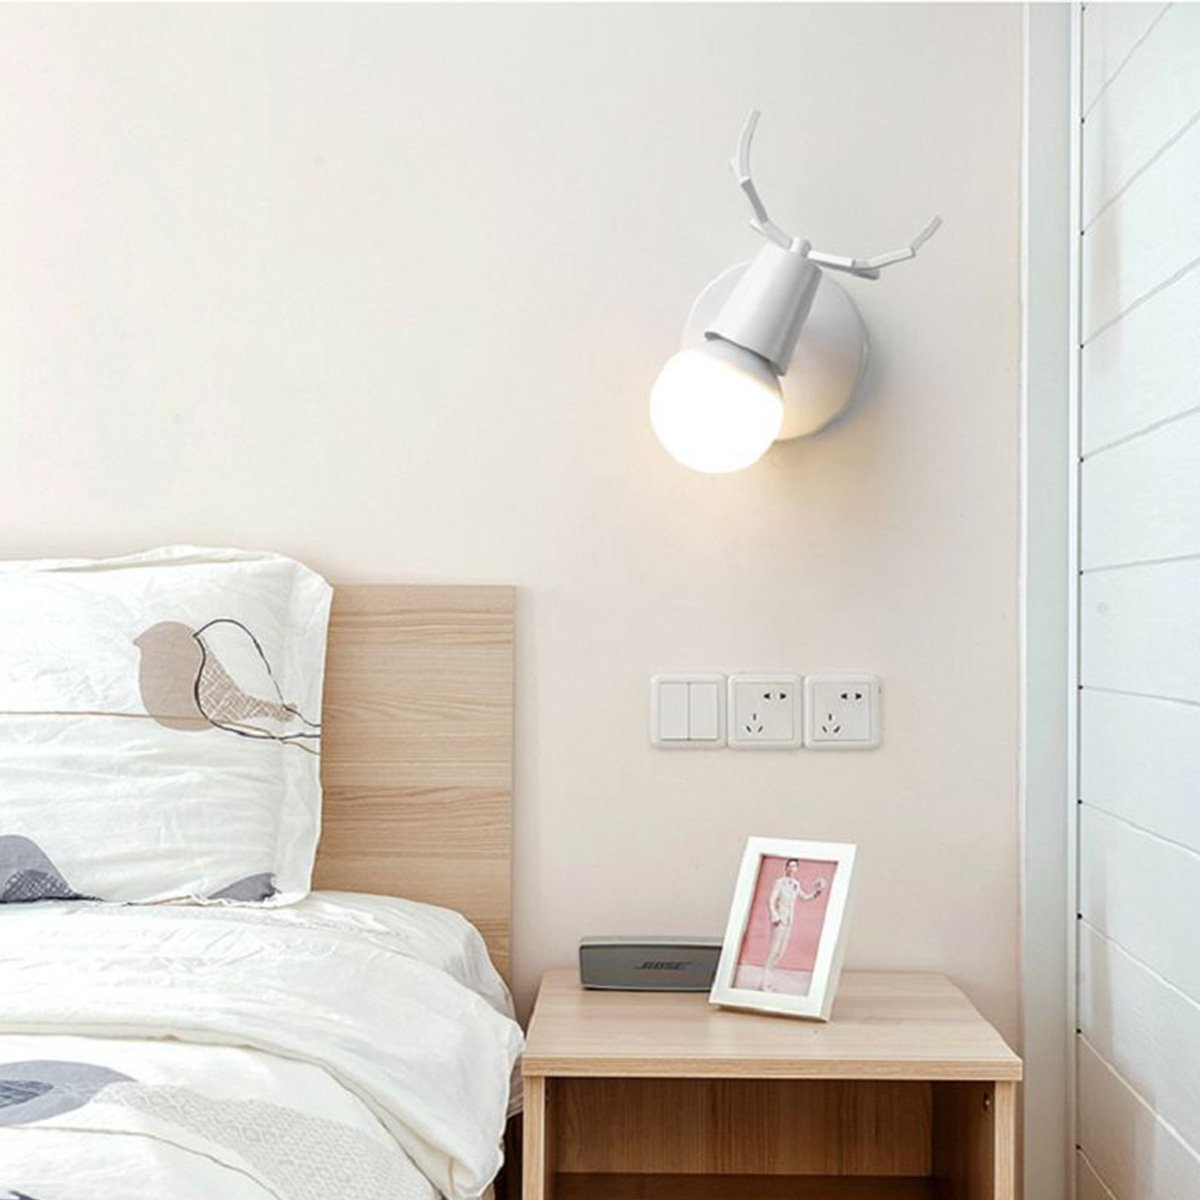 Kawell Creative Wall Light Modern Lamp Simple Scone Iron Antler Wiring Kit E27 Base Deer Head Nordic Style Art Deco For Bedroom Living Room Childrens